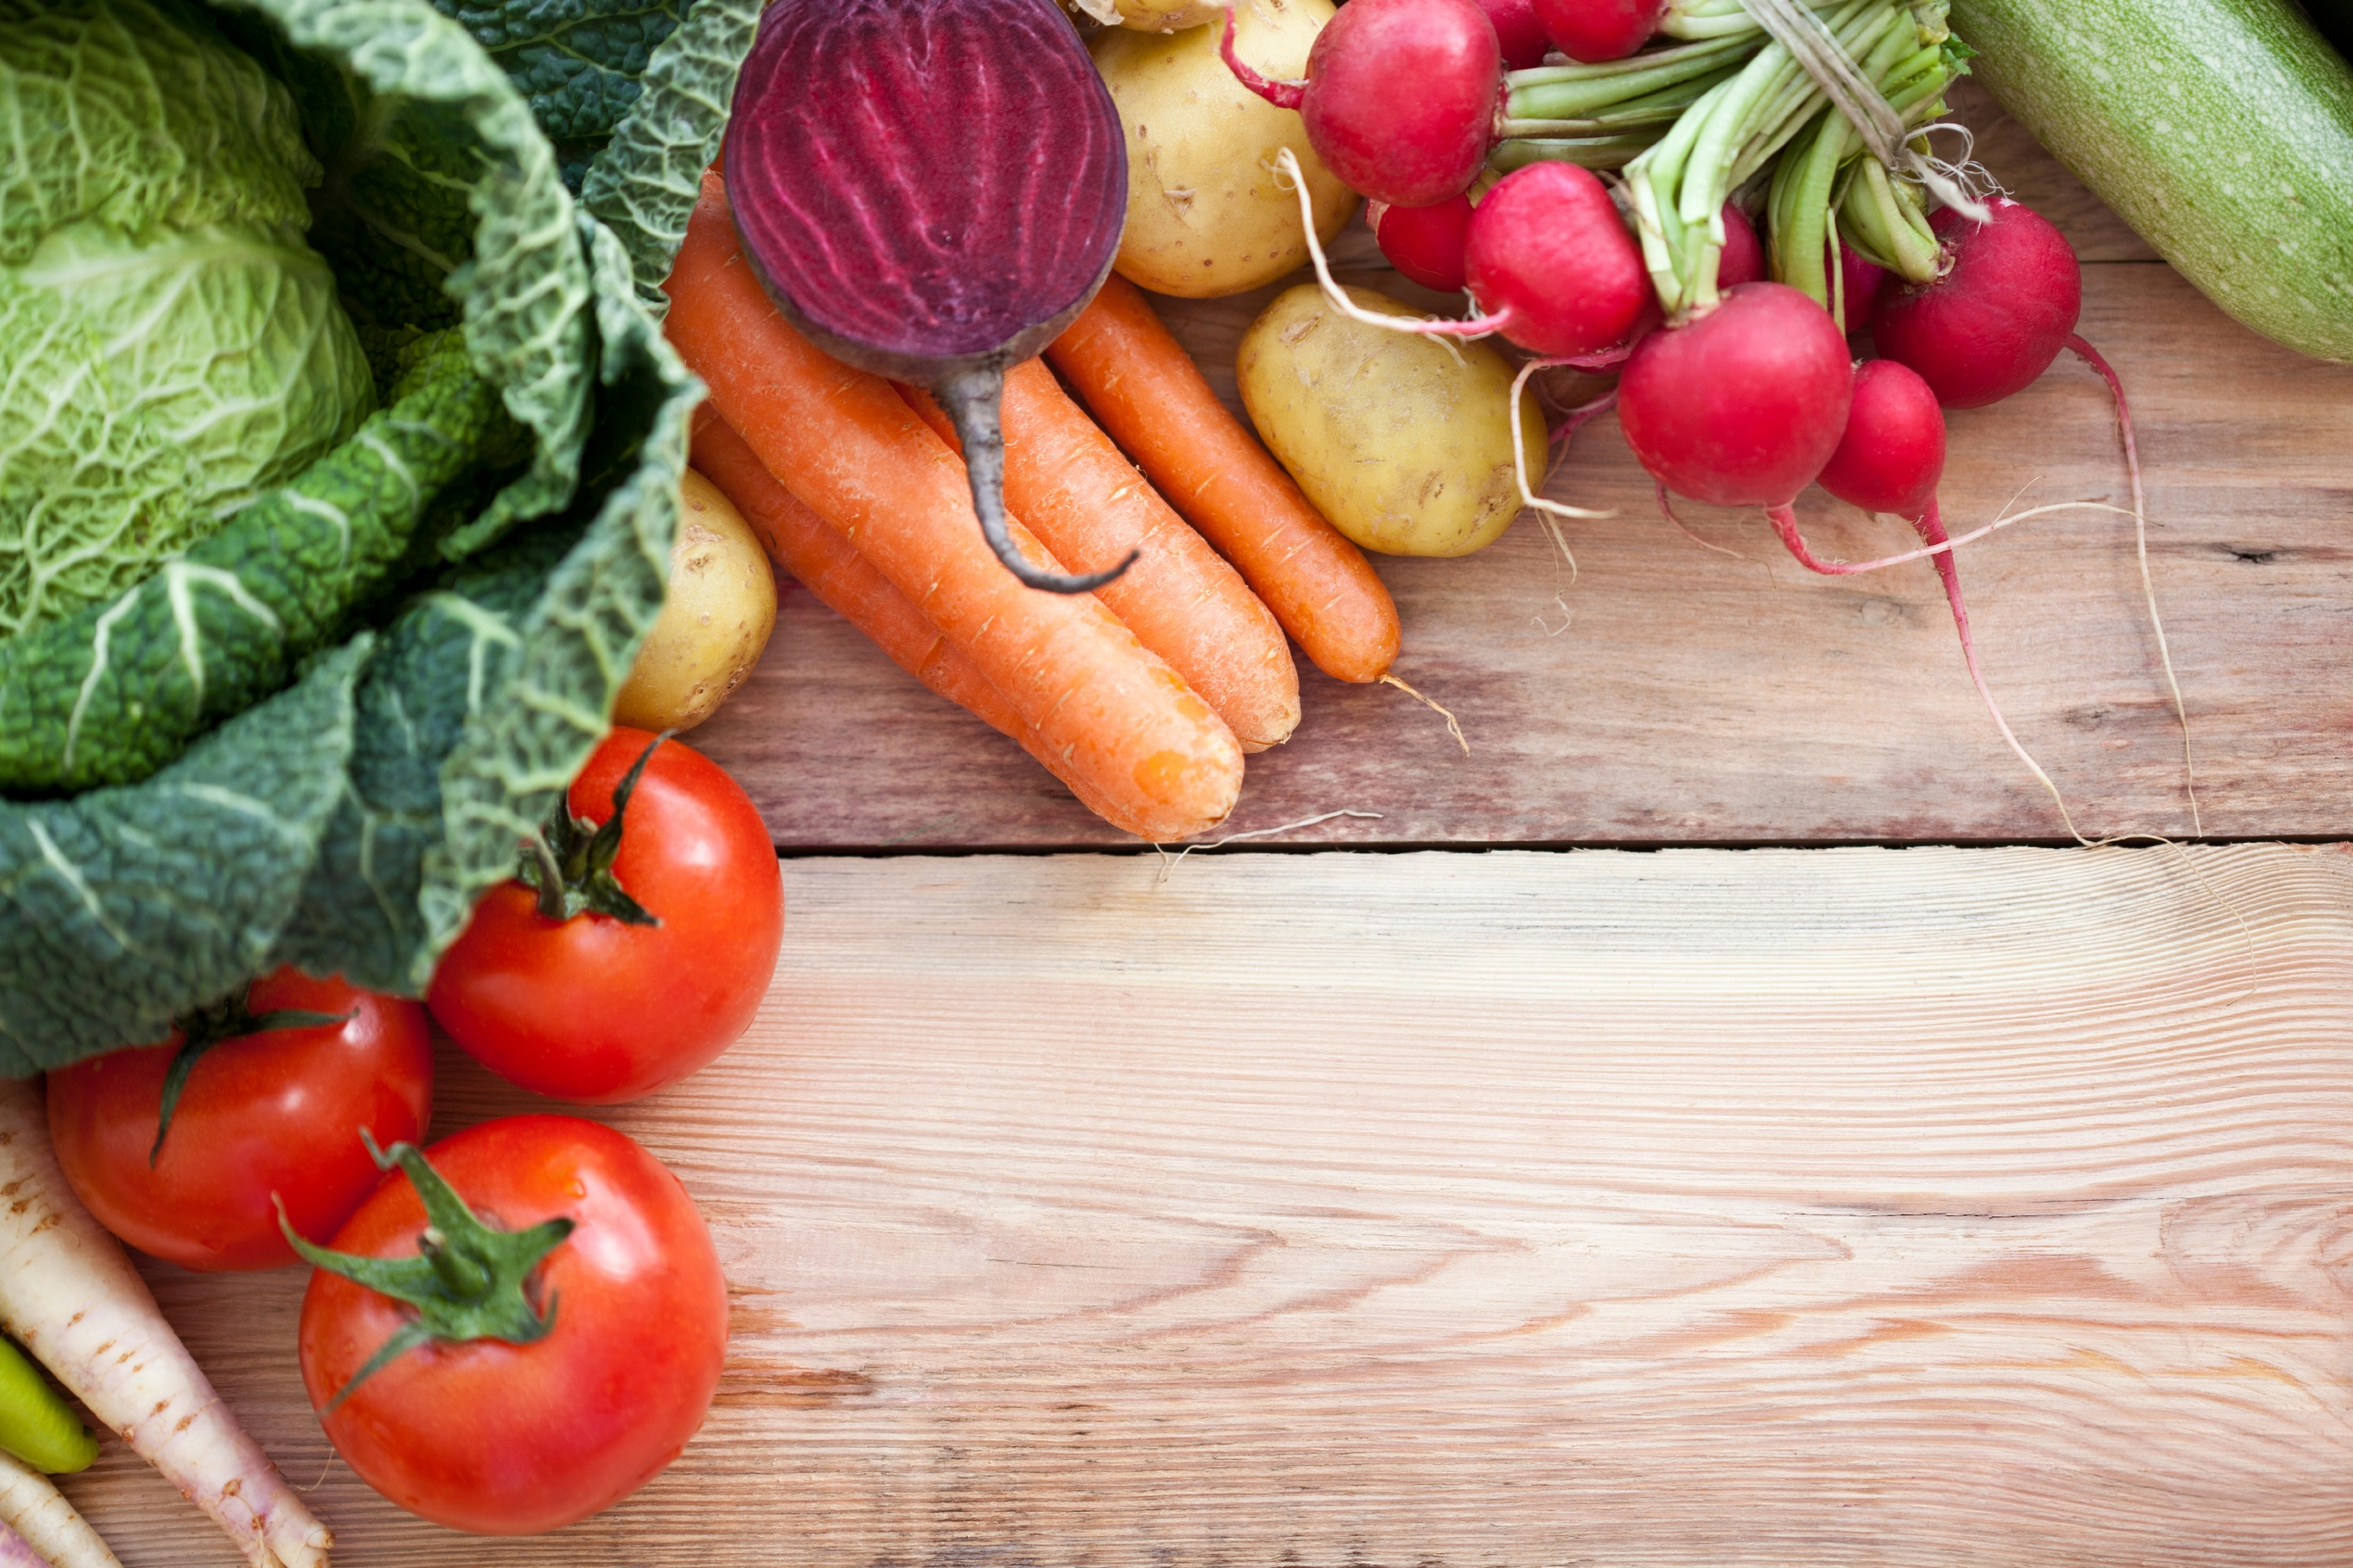 Vegetable background